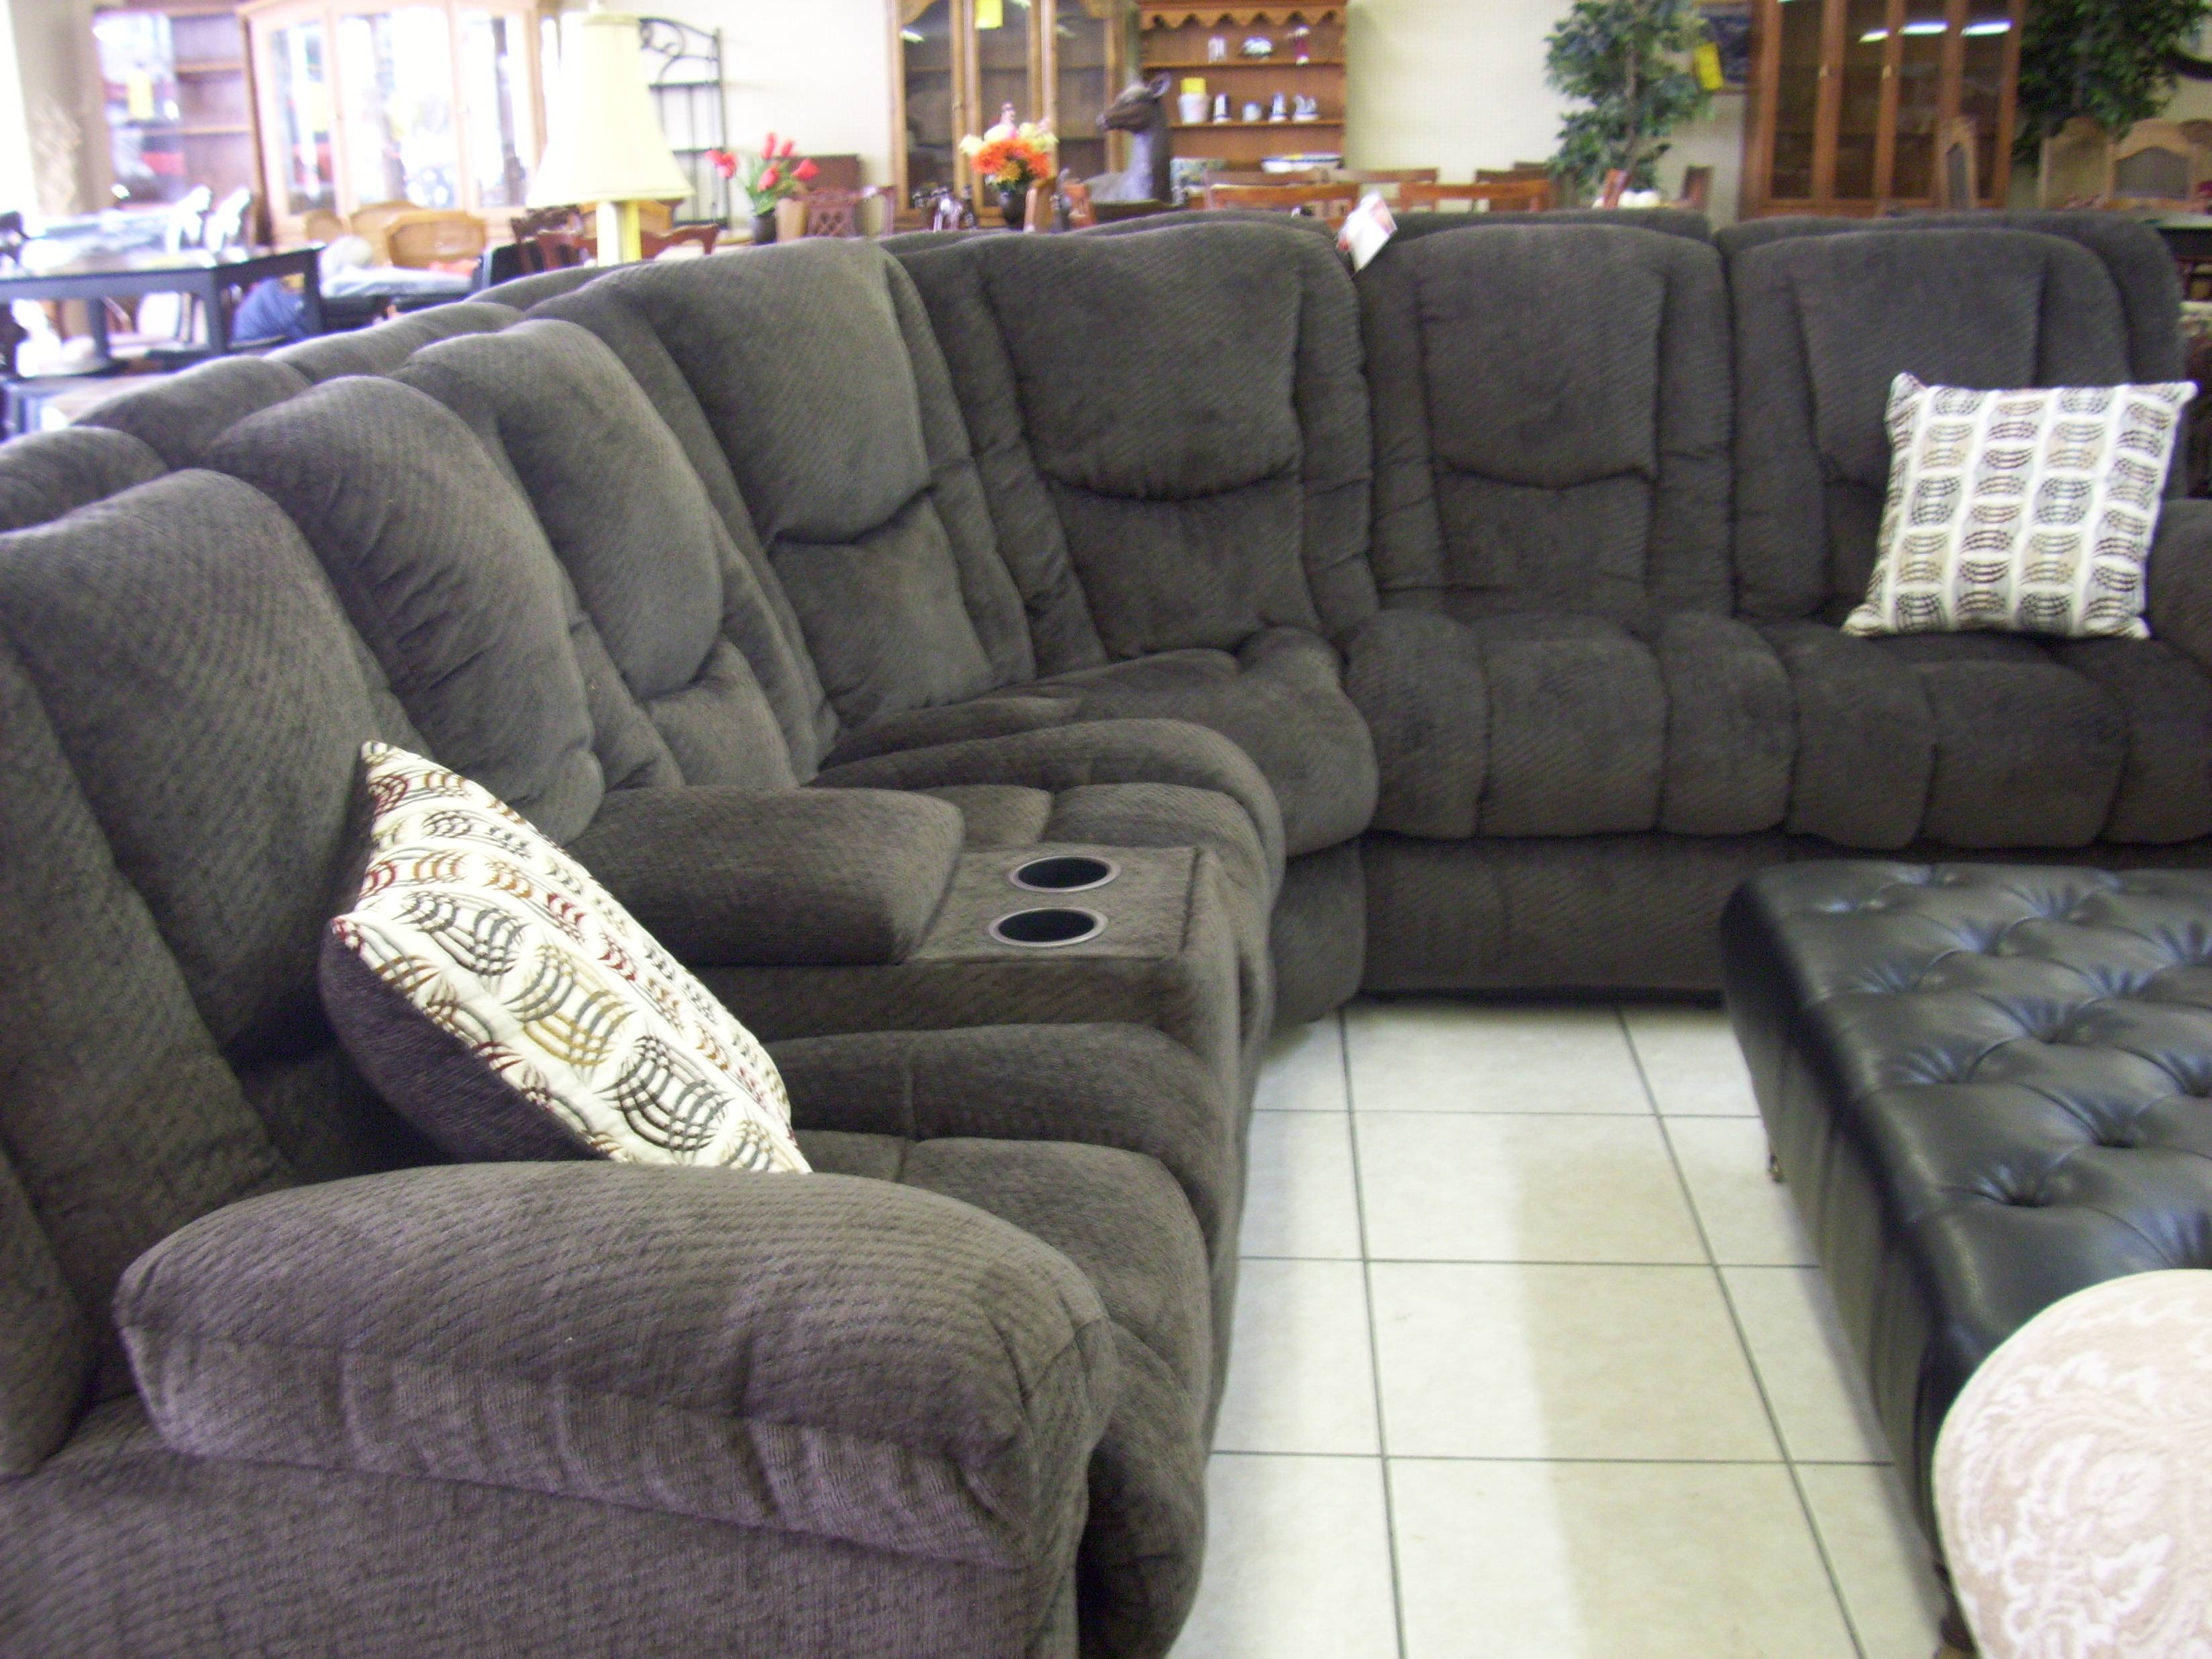 Sectional Sofas For Small Spaces With Recliners | Aviblock with regard to Sectional Sofas for Small Spaces With Recliners (Image 18 of 30)